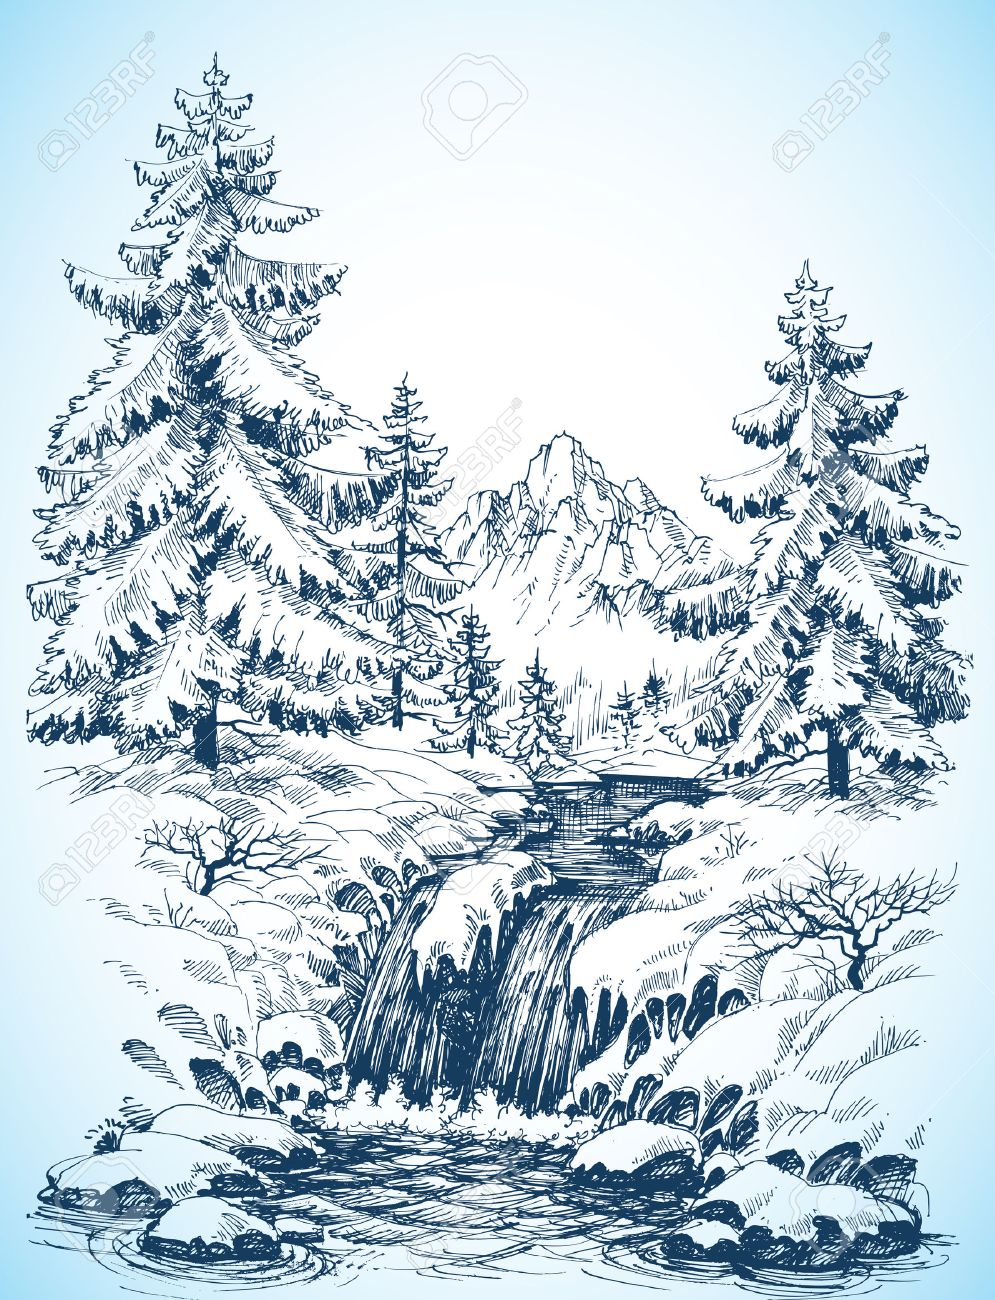 Winter snowy landscape, pine forest and river in the mountains drawing - 46666339